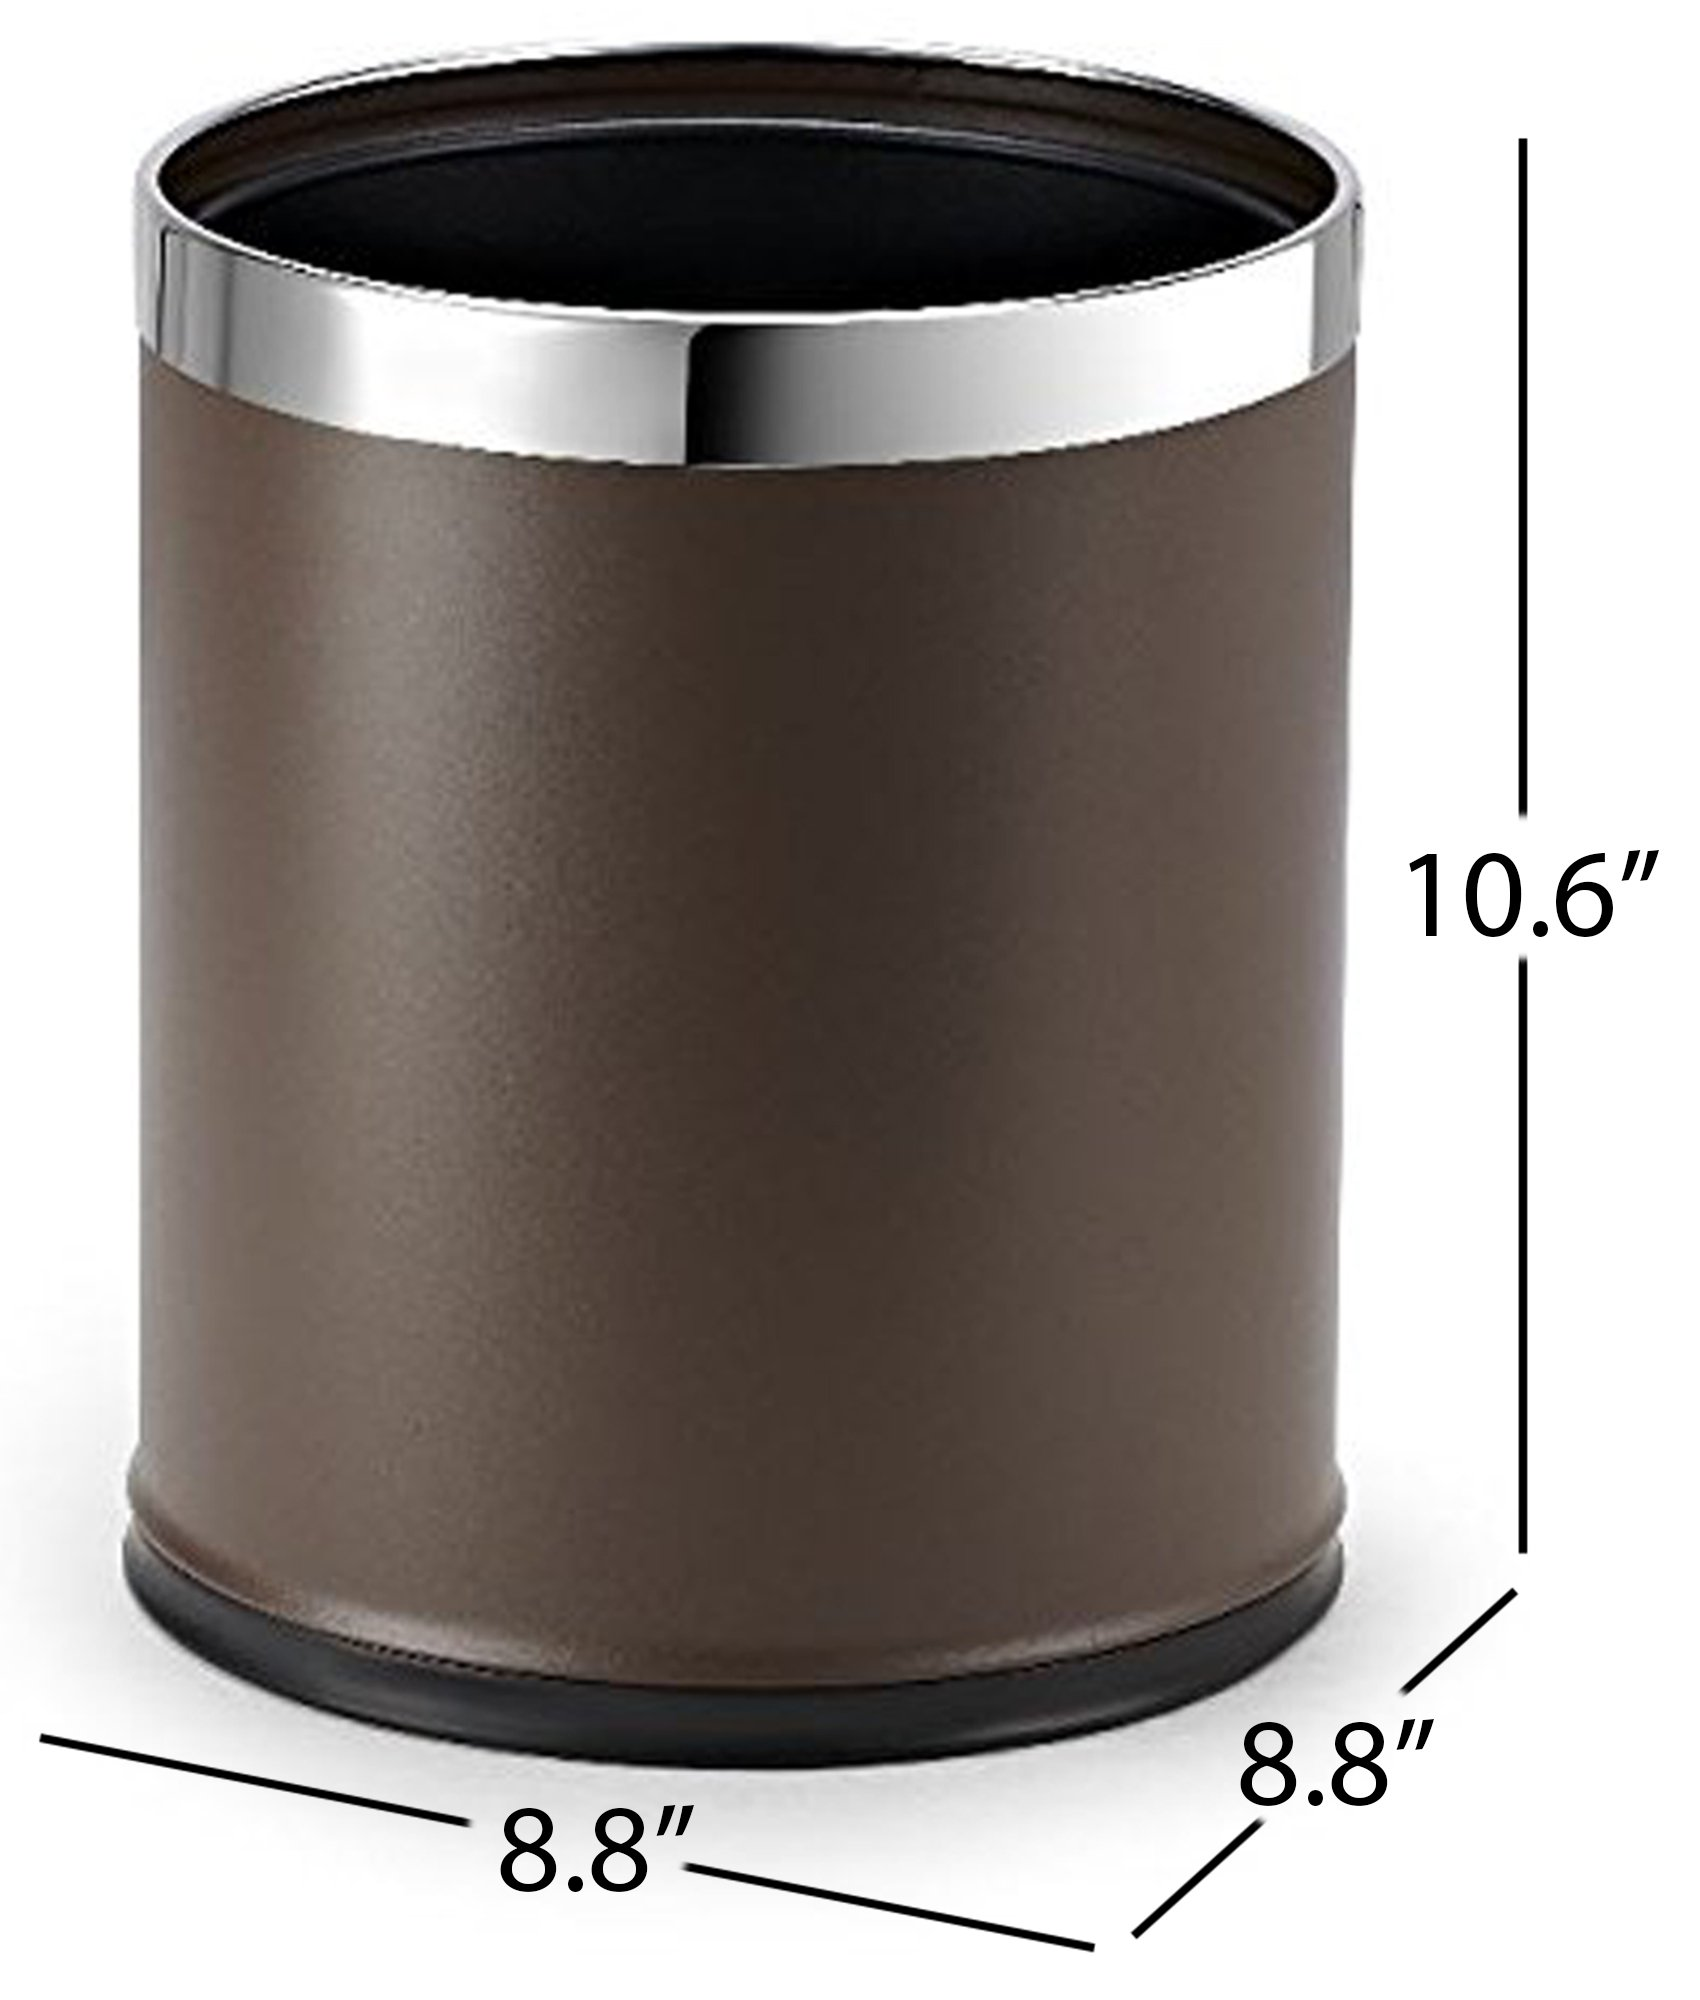 Brelso 'Invisi-Overlap' Metal Trash Can, Open Top Small Office Wastebasket, Round Shape (Brown)